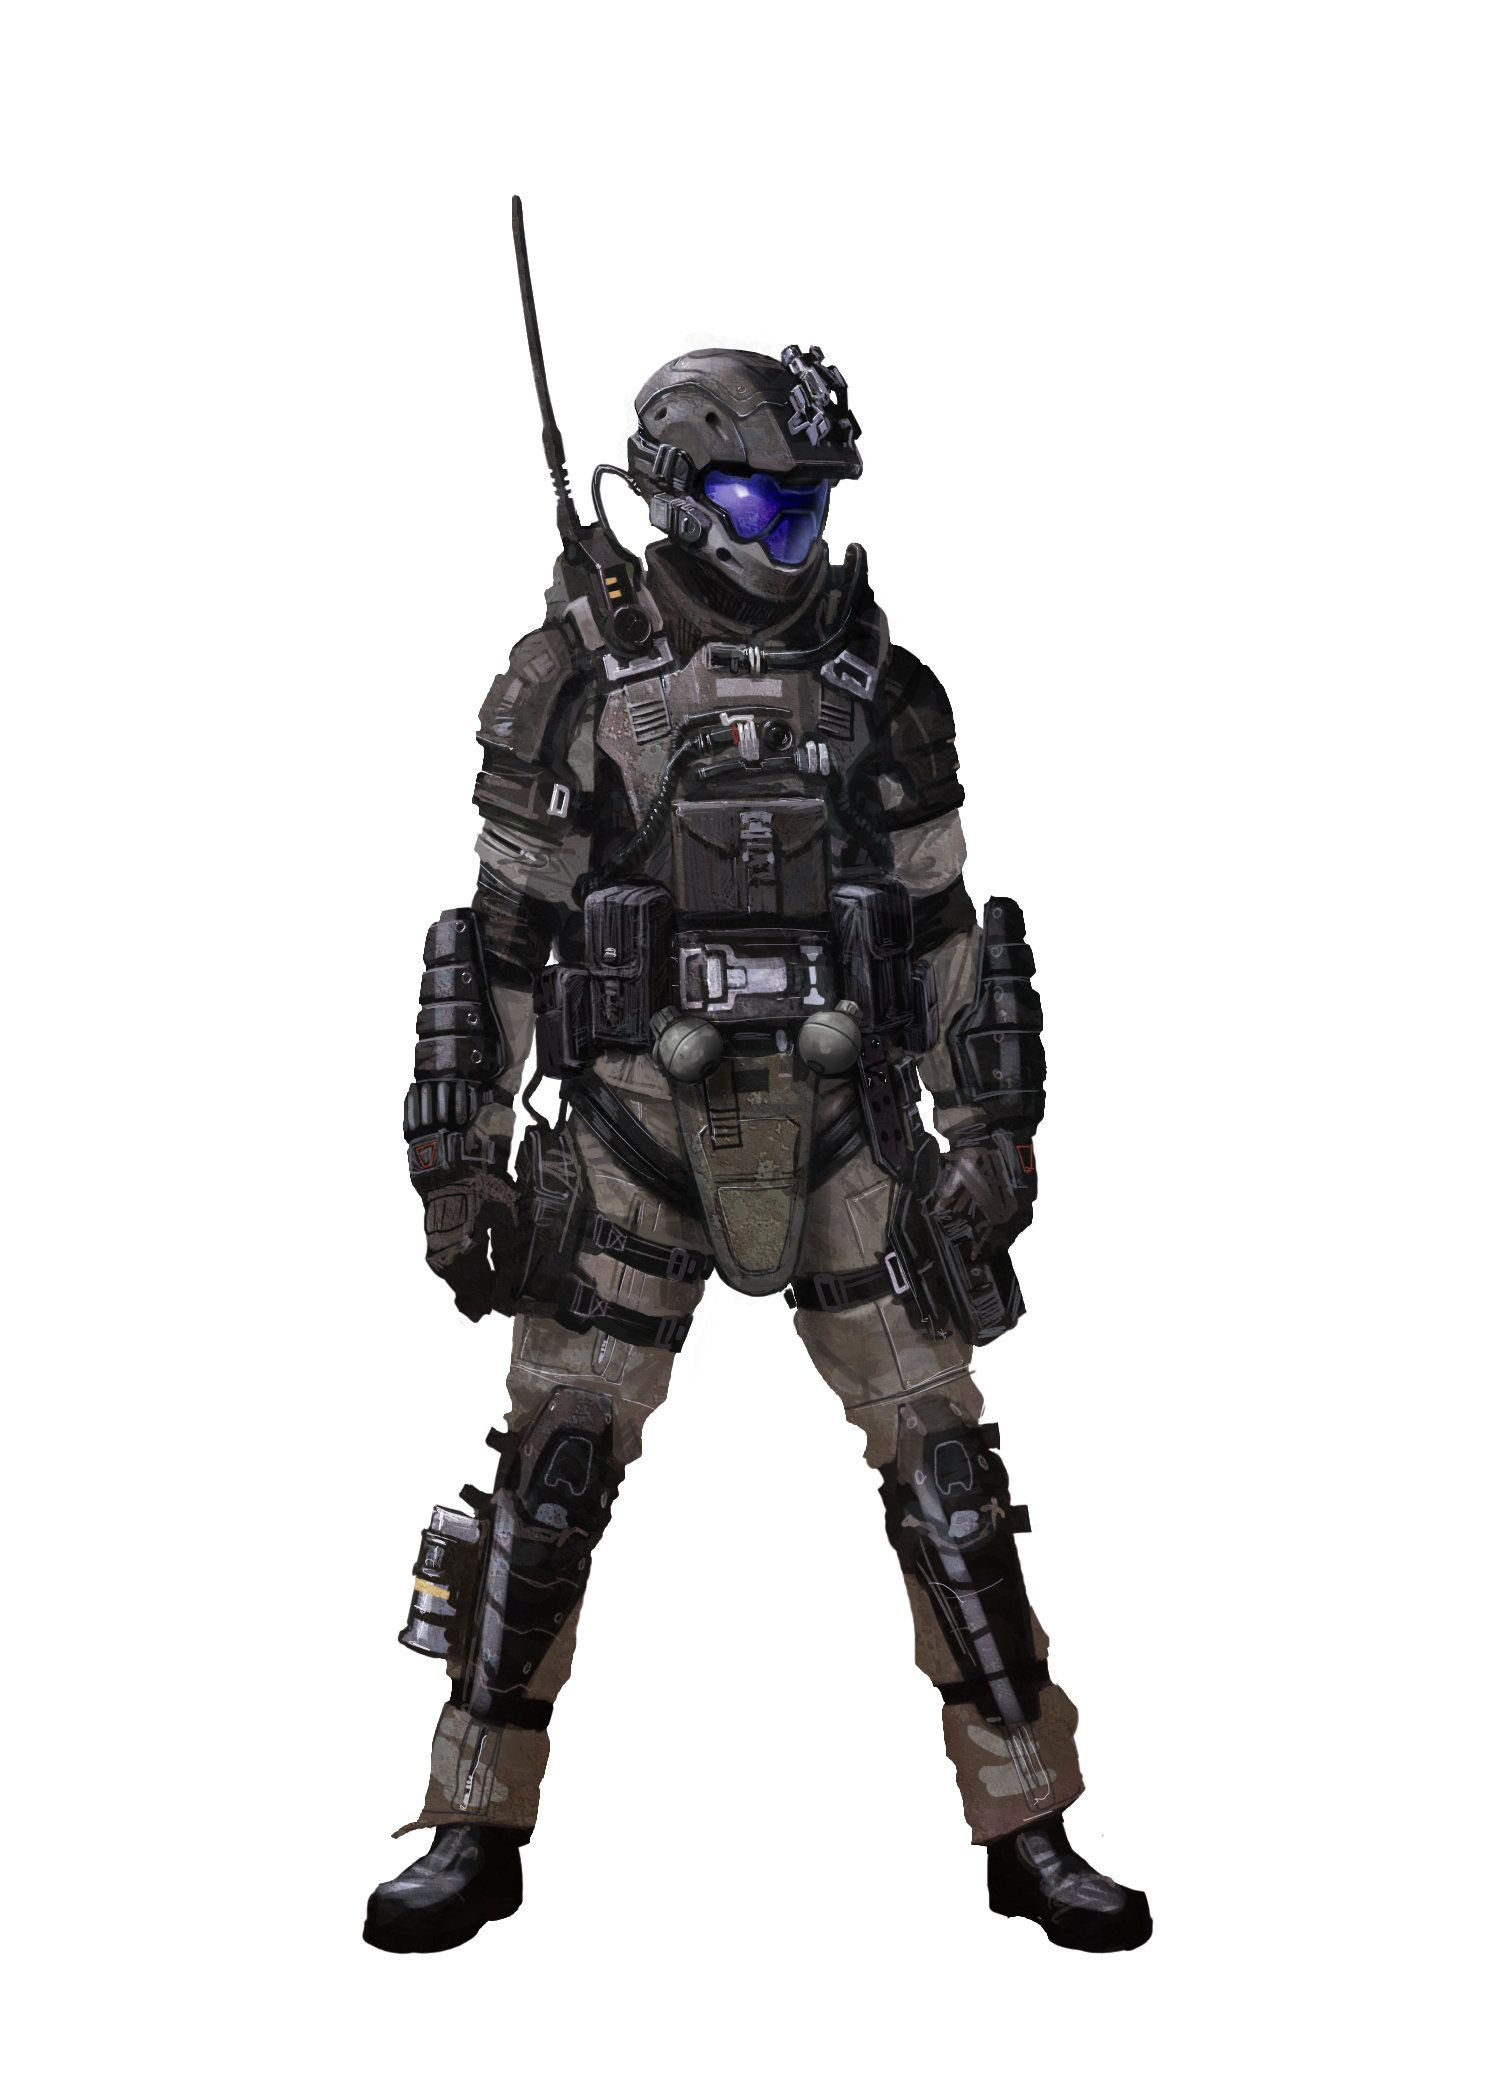 Artstation halo 3 odst iterations isaac hannaford sci fi 2 pinterest sci fi cosplay - Halo odst images ...